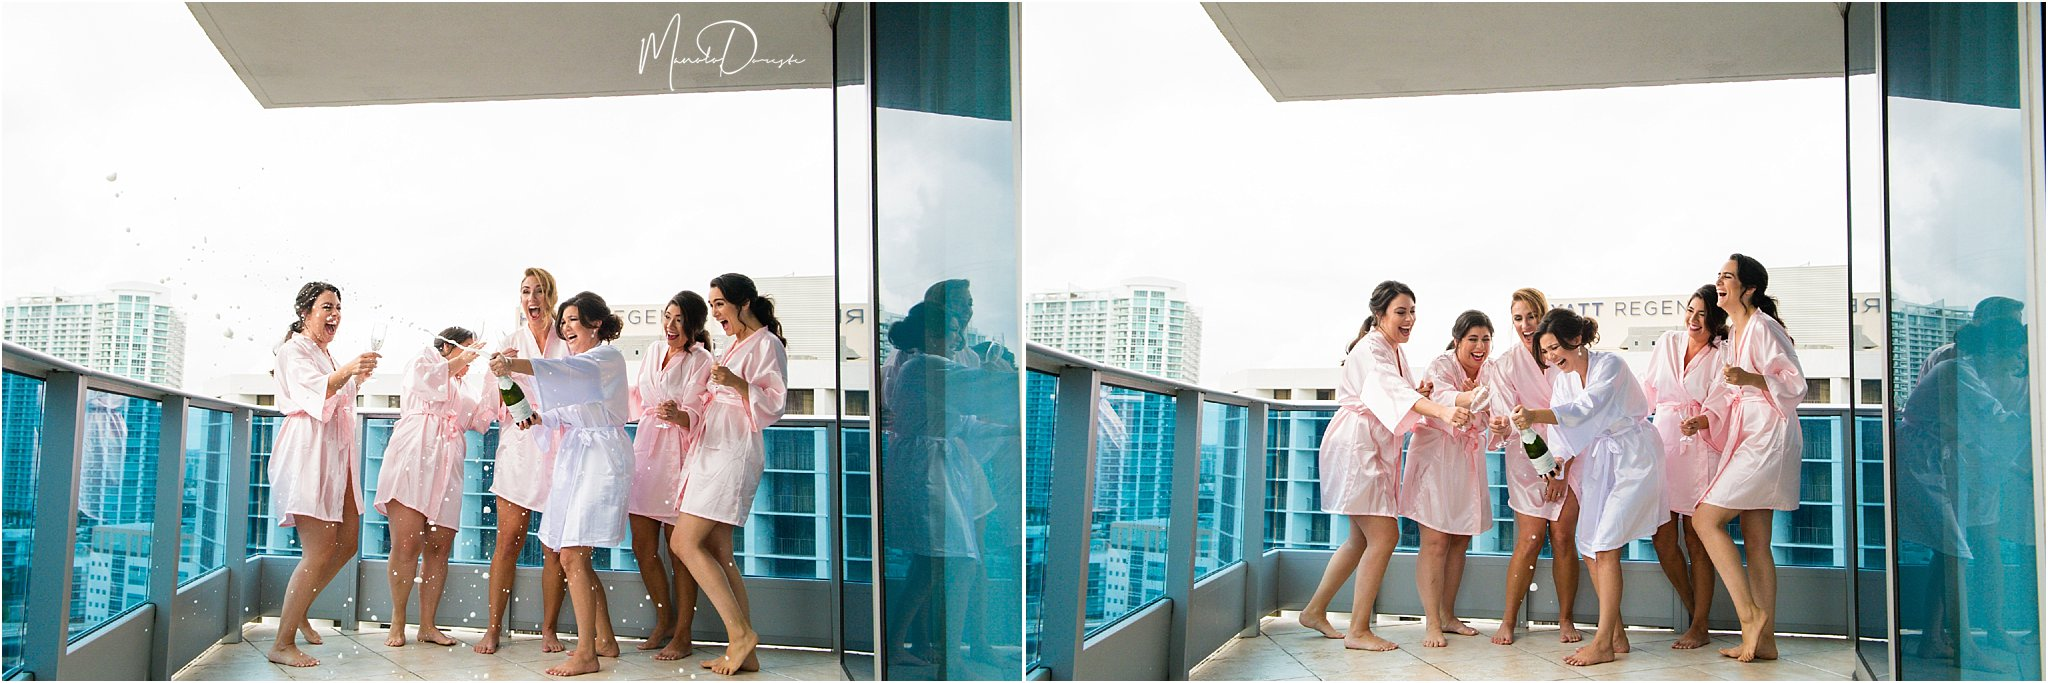 0080_ManoloDoreste_InFocusStudios_Wedding_Family_Photography_Miami_MiamiPhotographer.jpg